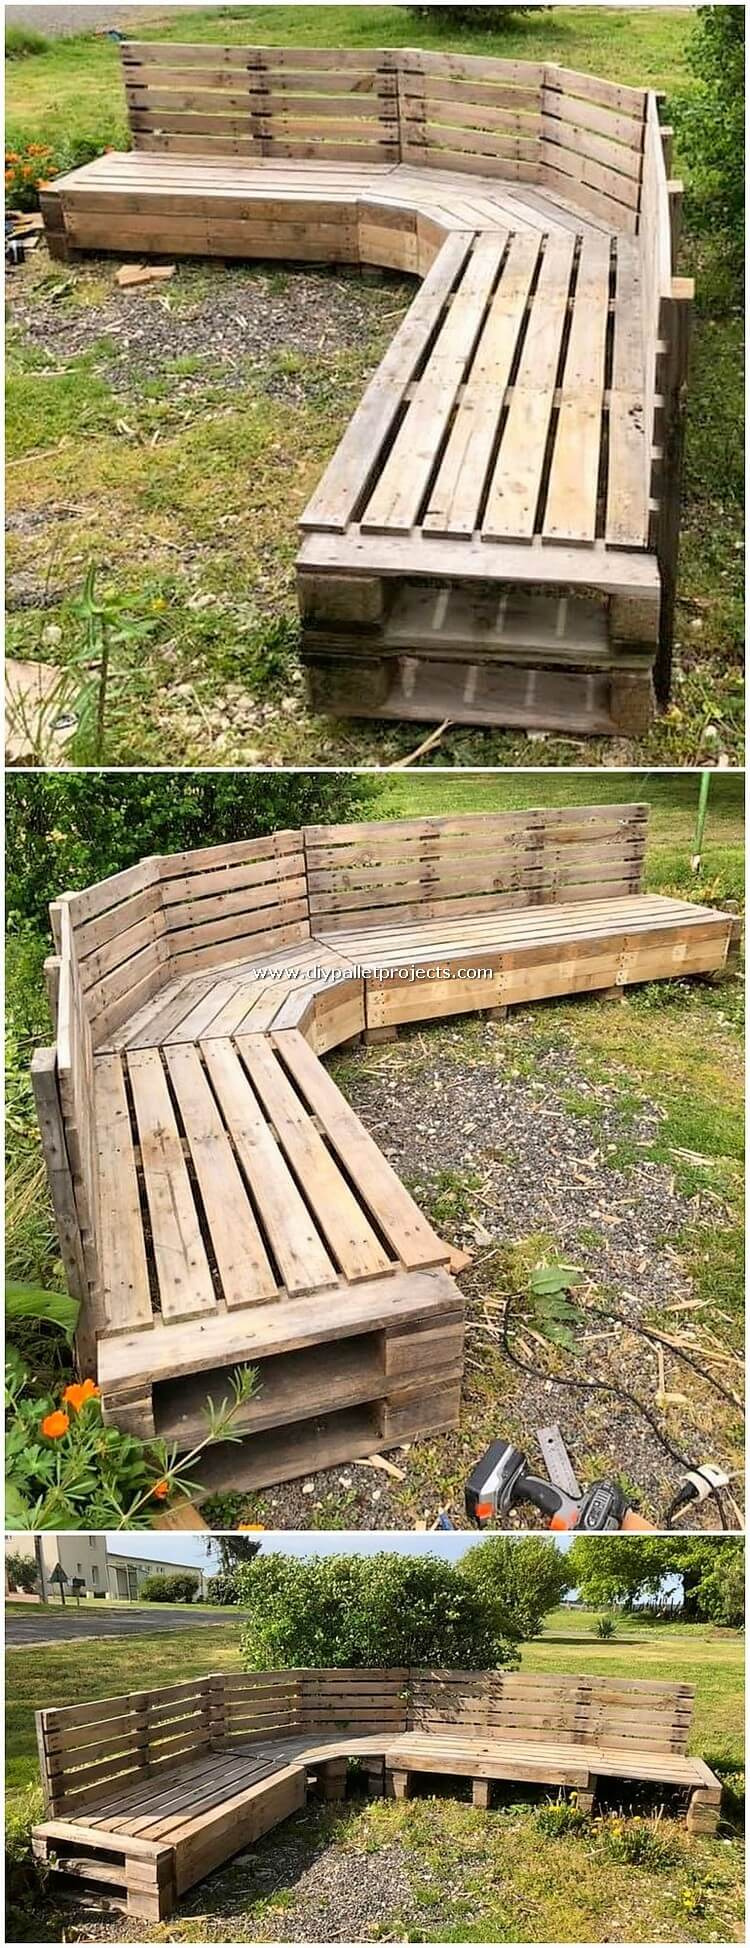 Pallet Garden Bench or Couch